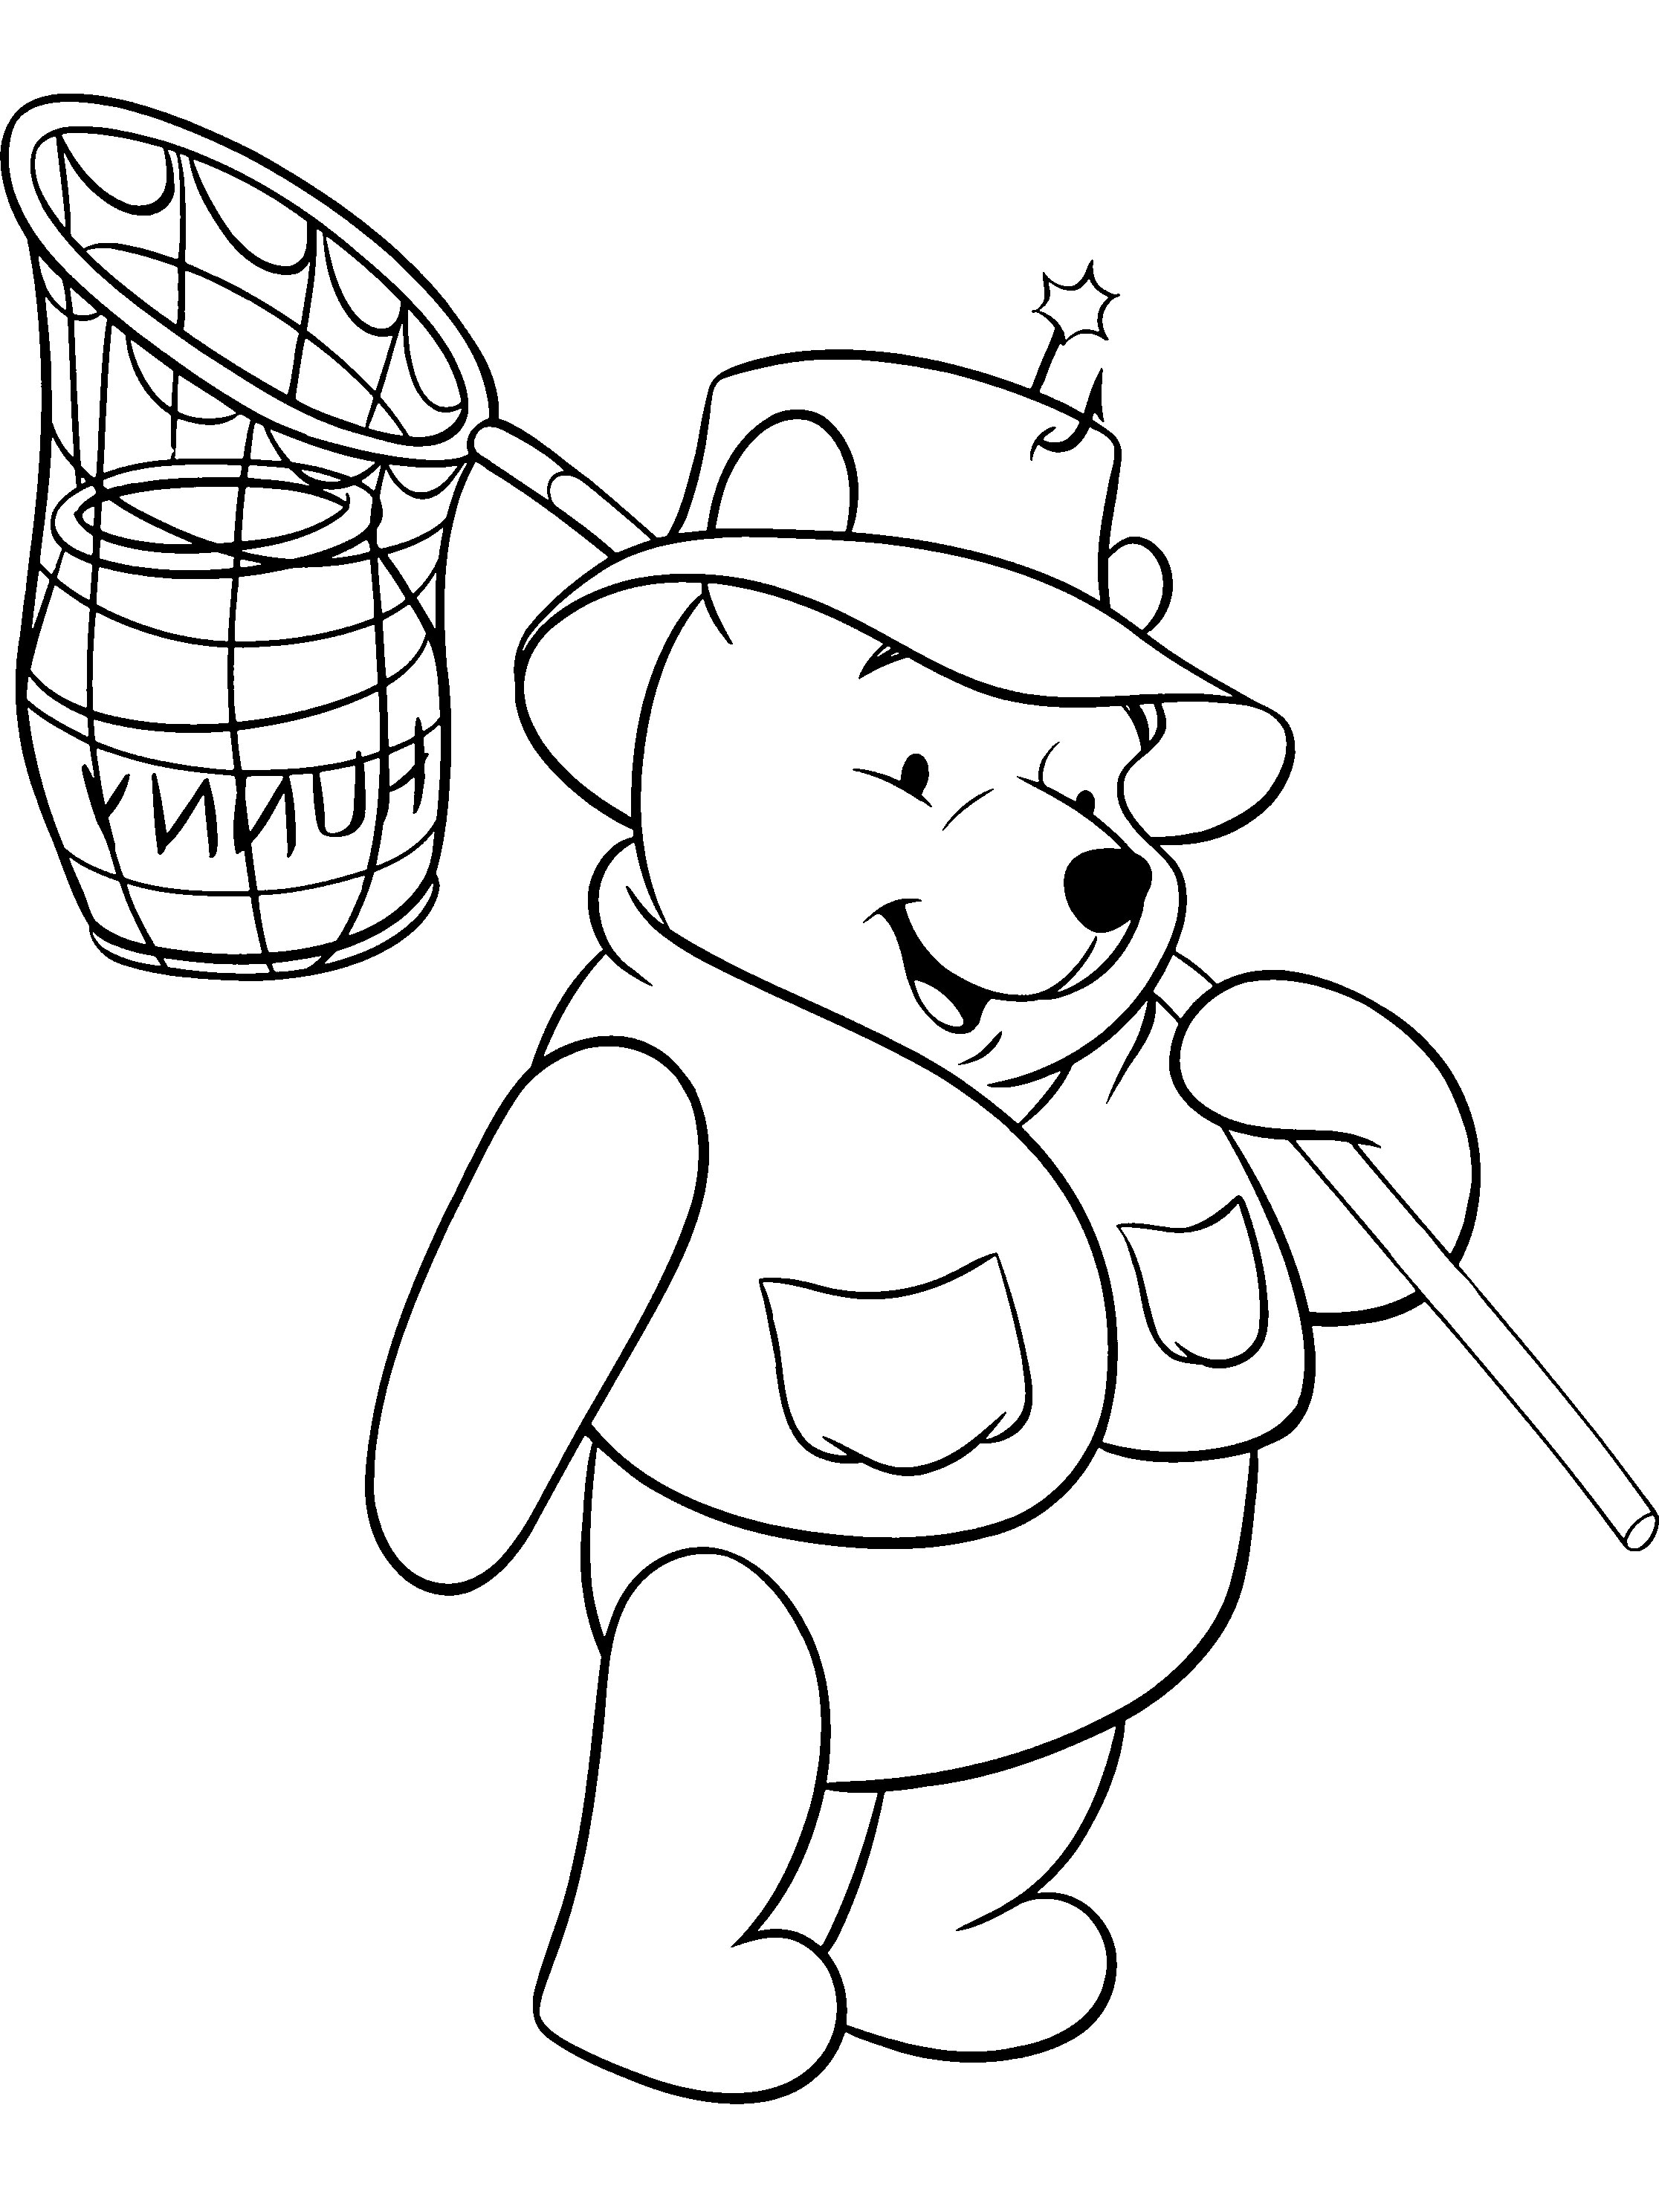 the pohh coloring pages - photo#36